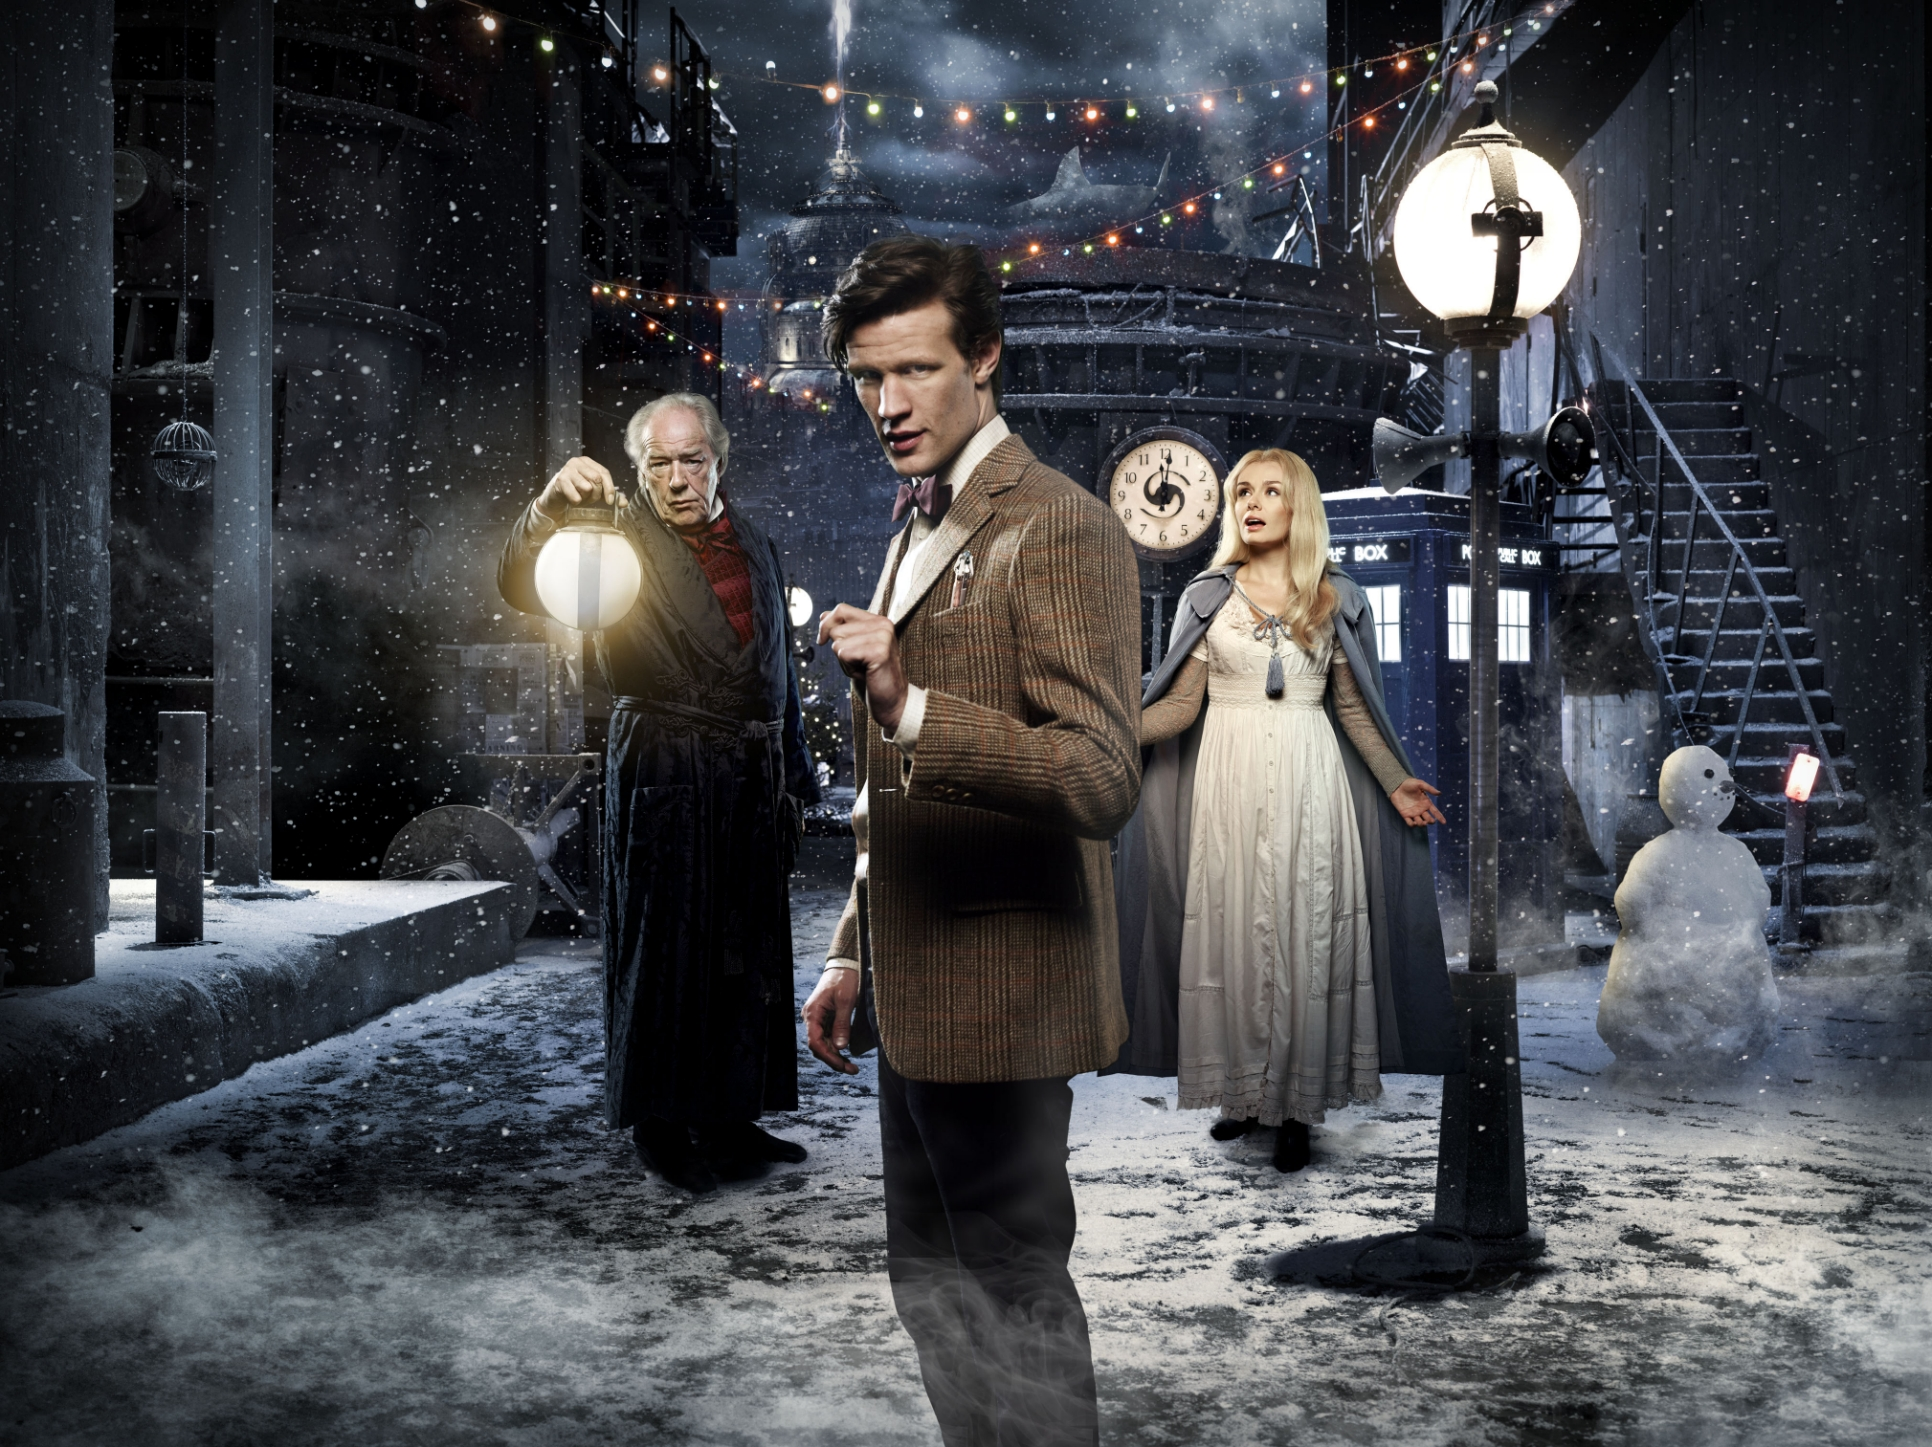 Gaming Wallpaper For Girls Doctor Who Tv Series 5 Story 213 A Christmas Carol Special